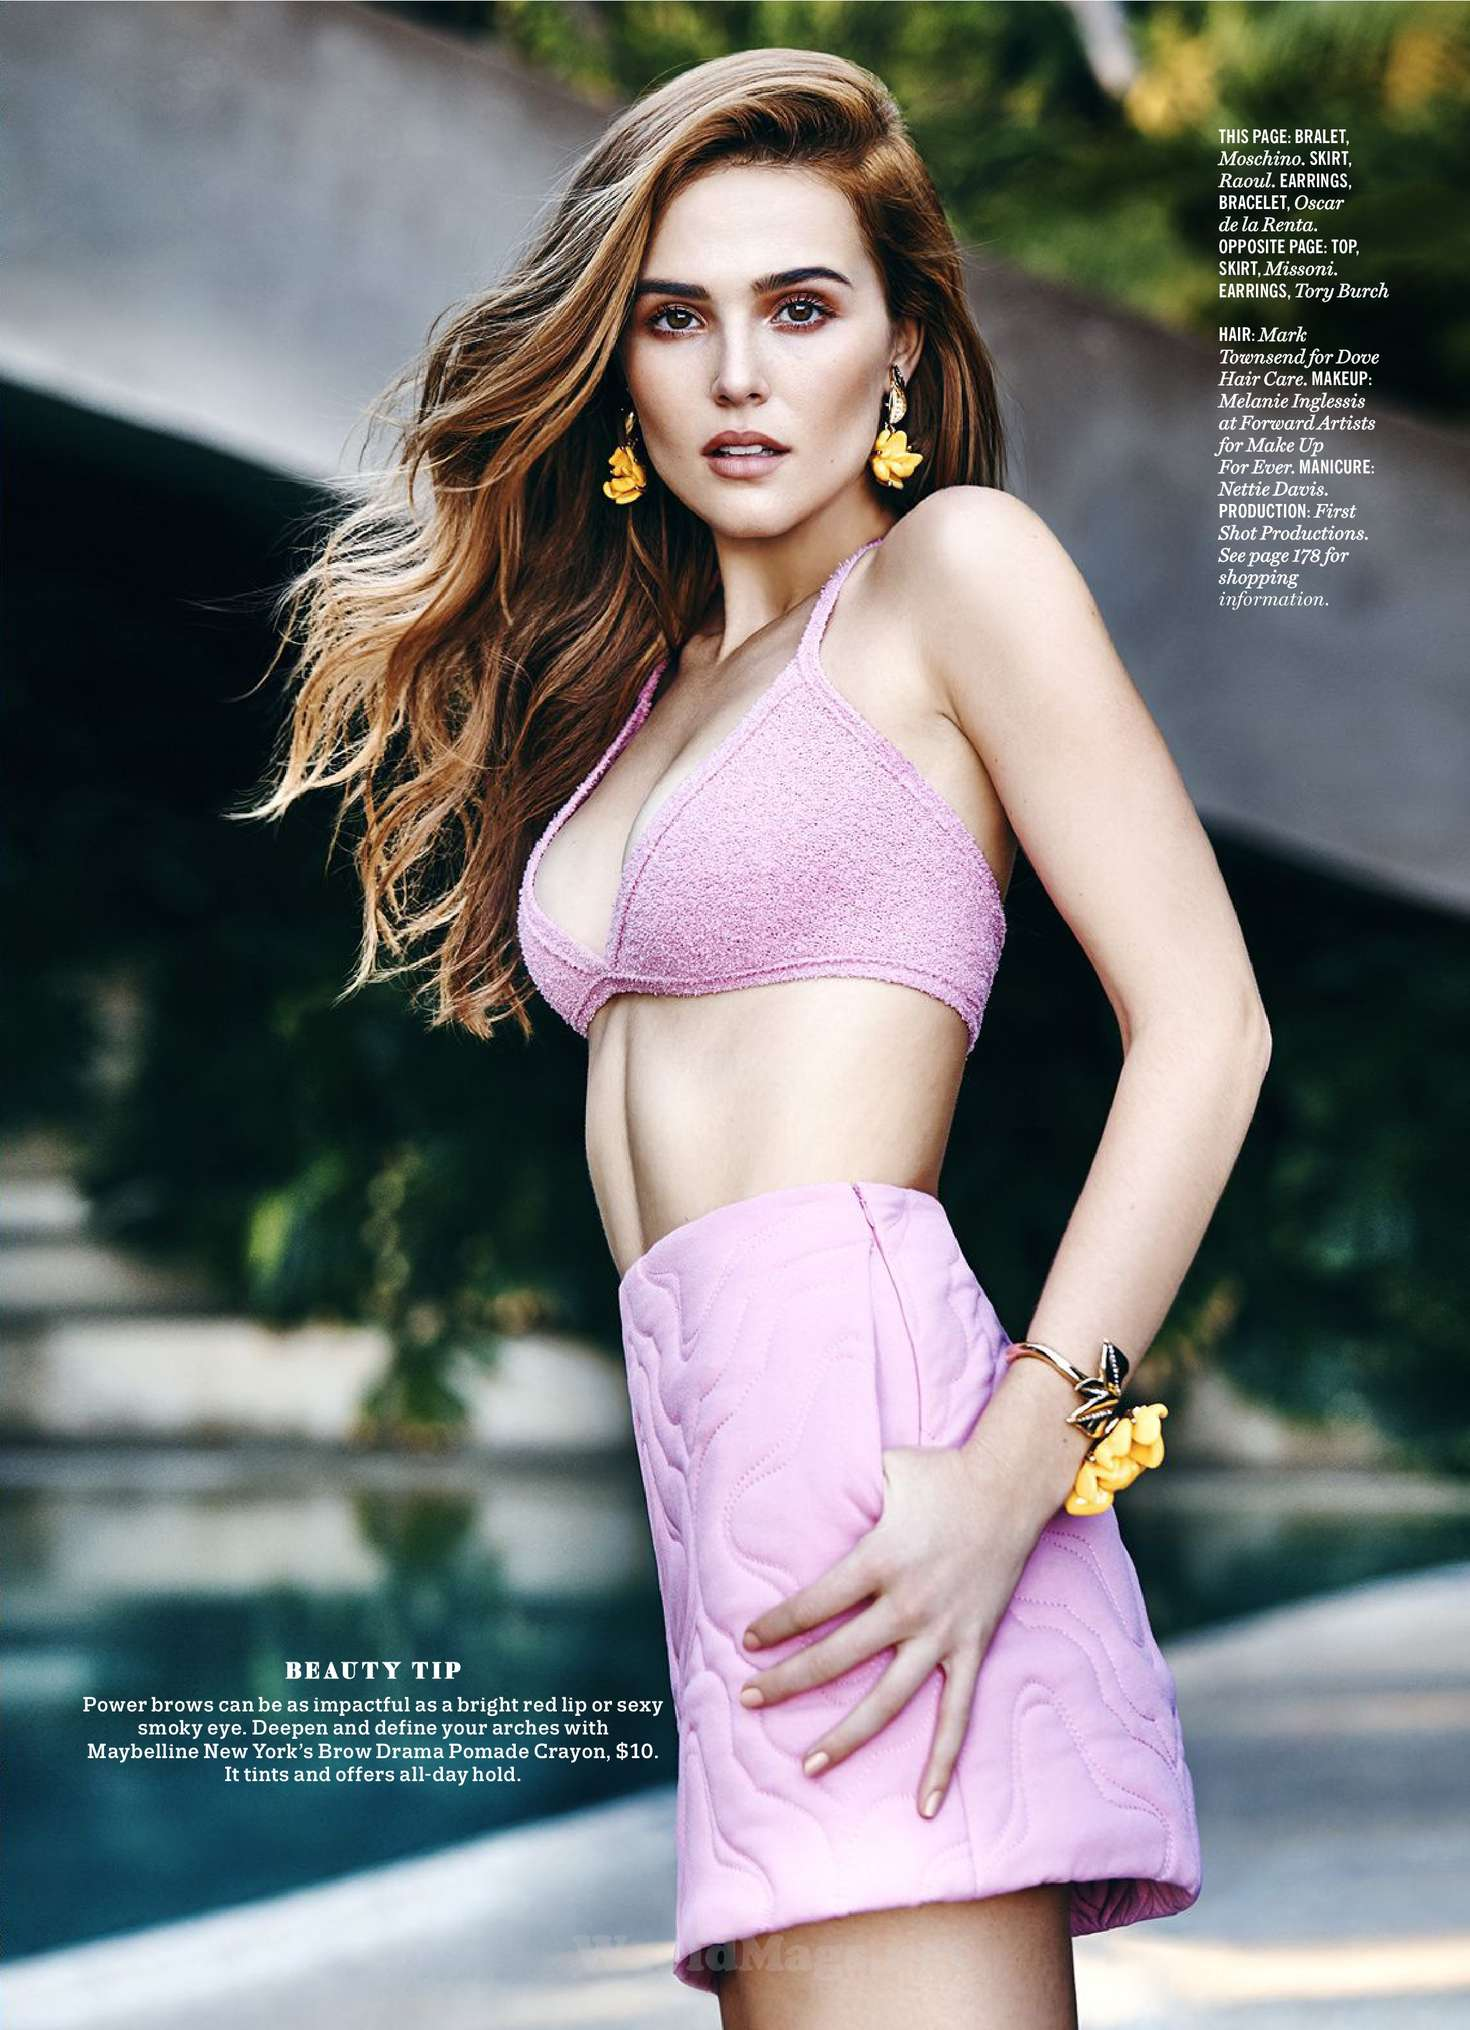 Zoey Deutch 2016 : Zoey Deutch: Cosmopolitan Magazine 2016 -01